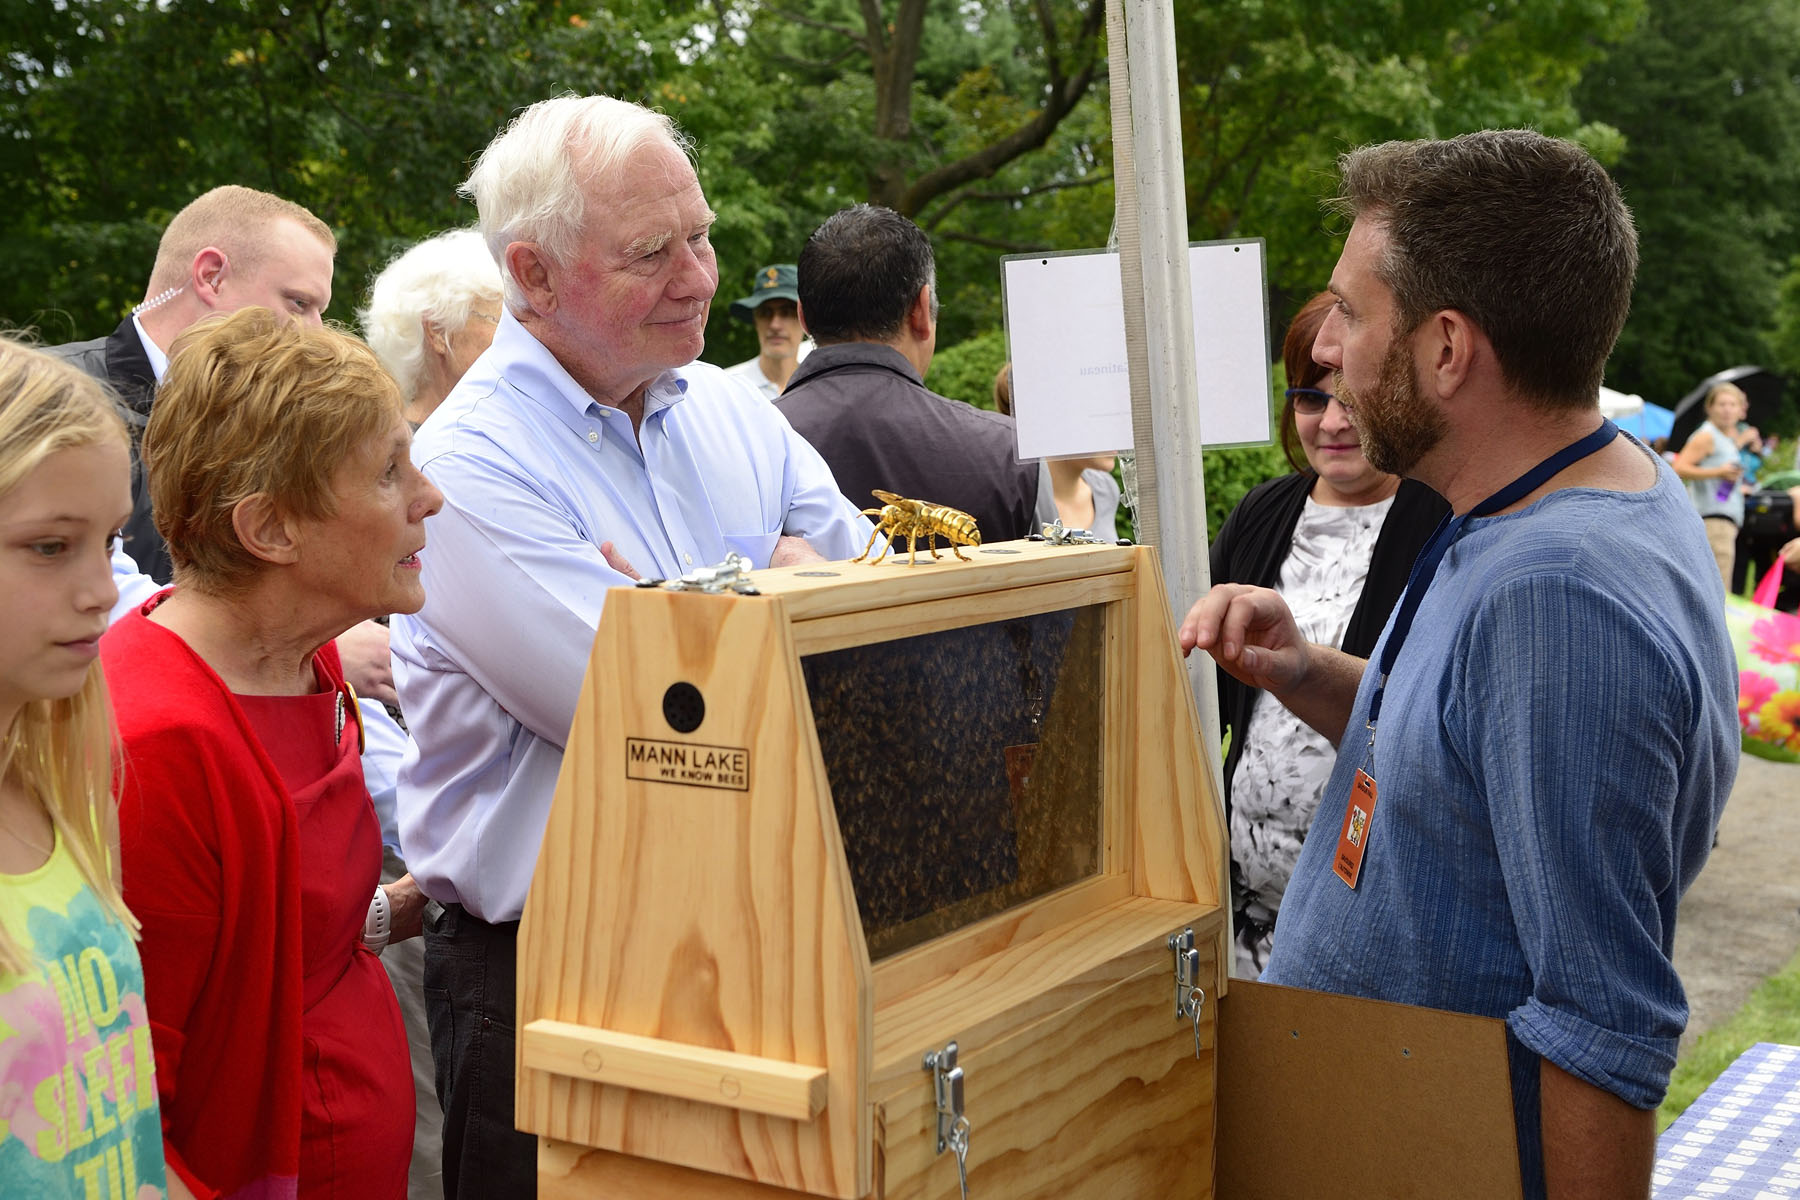 Their Excellencies visited the Apiculture Gatineau kiosk to discuss the ethical development of beekeeping in Gatineau and the surrounding areas. Apiculture Gatineau recognizes the importance of biodiversity, and through workshops and courses about beekeeping and honeymaking, strives to develop an appreciation of biodiversity among the general public.